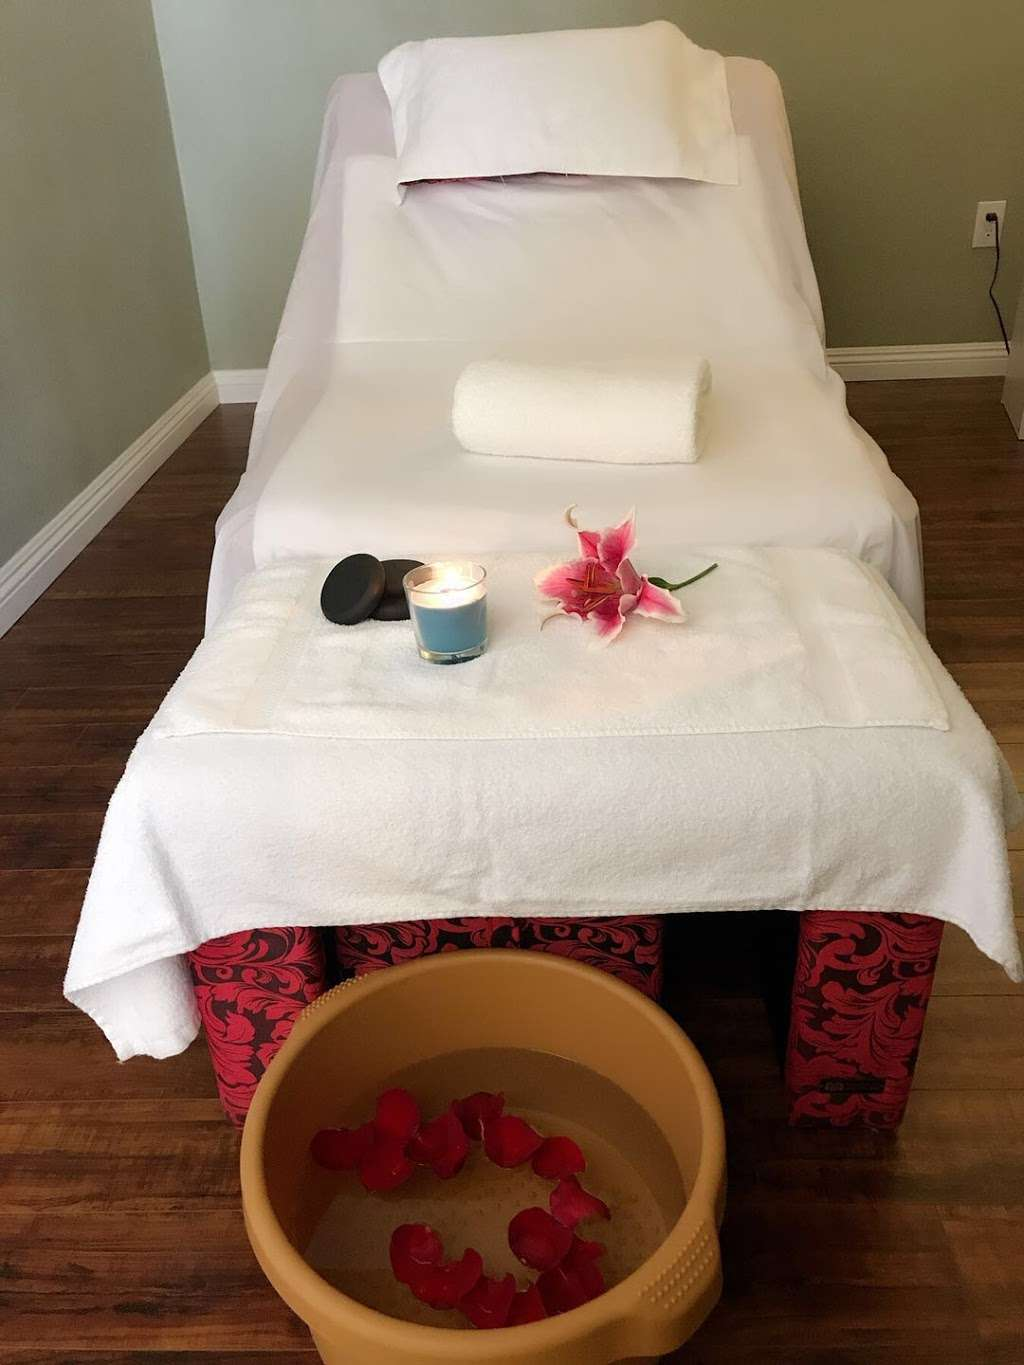 Just Yu Massage - spa  | Photo 4 of 5 | Address: 6020 Santo Rd Suite C, San Diego, CA 92124, USA | Phone: (858) 987-0608